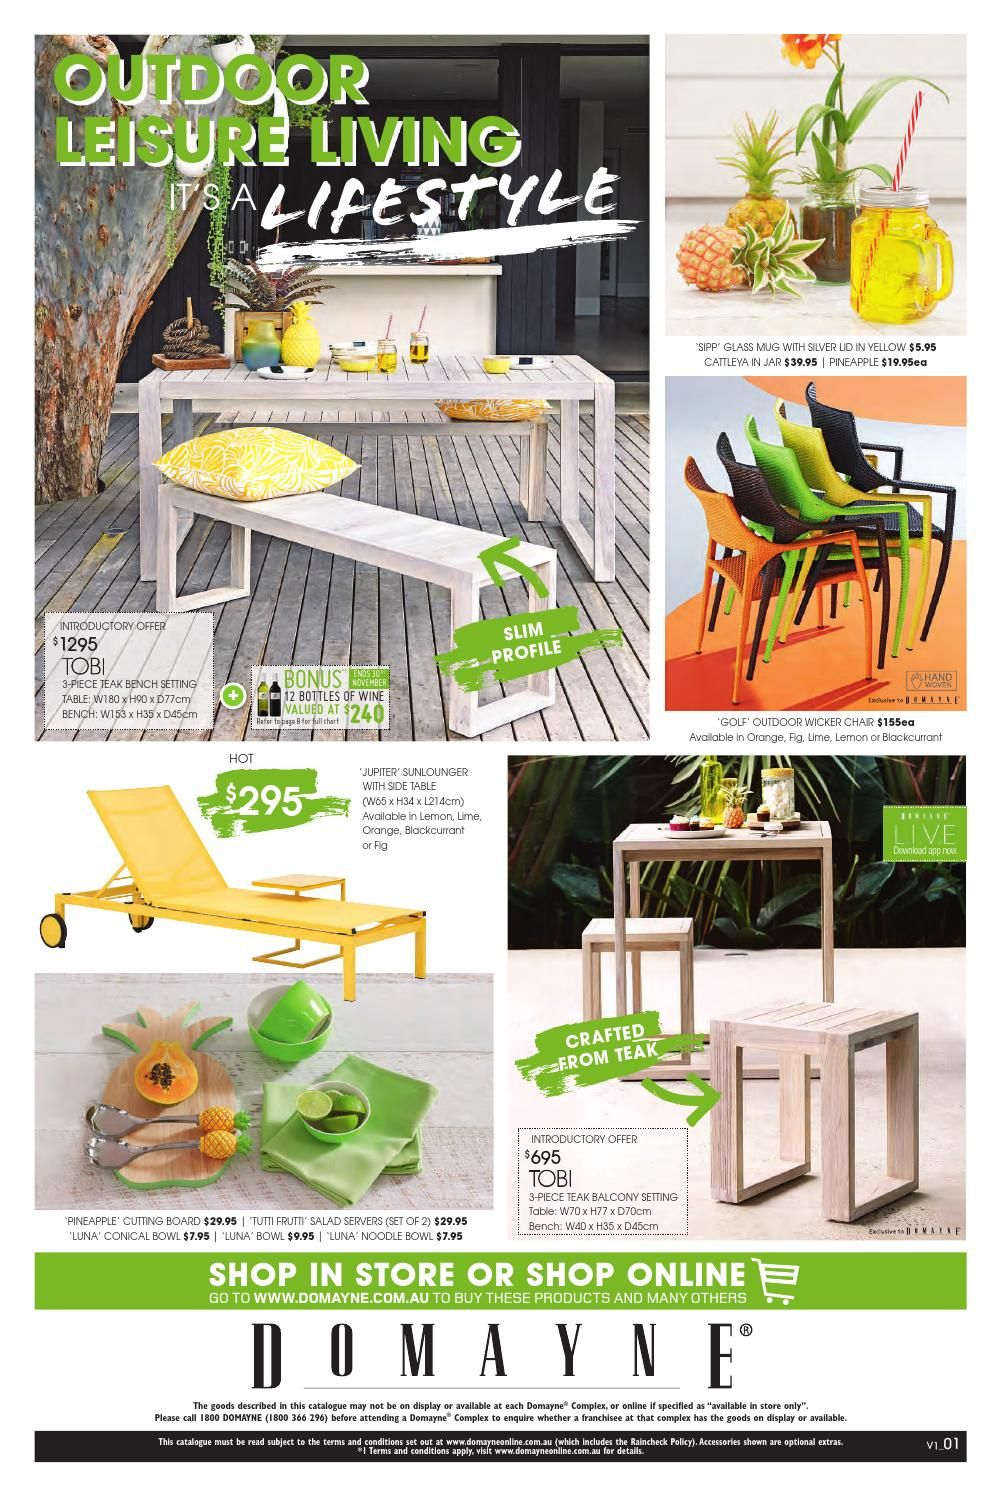 Outdoor Leisure Living - It's A Lifestyle. Catalogue available from 01.11.14 to 23.11.14